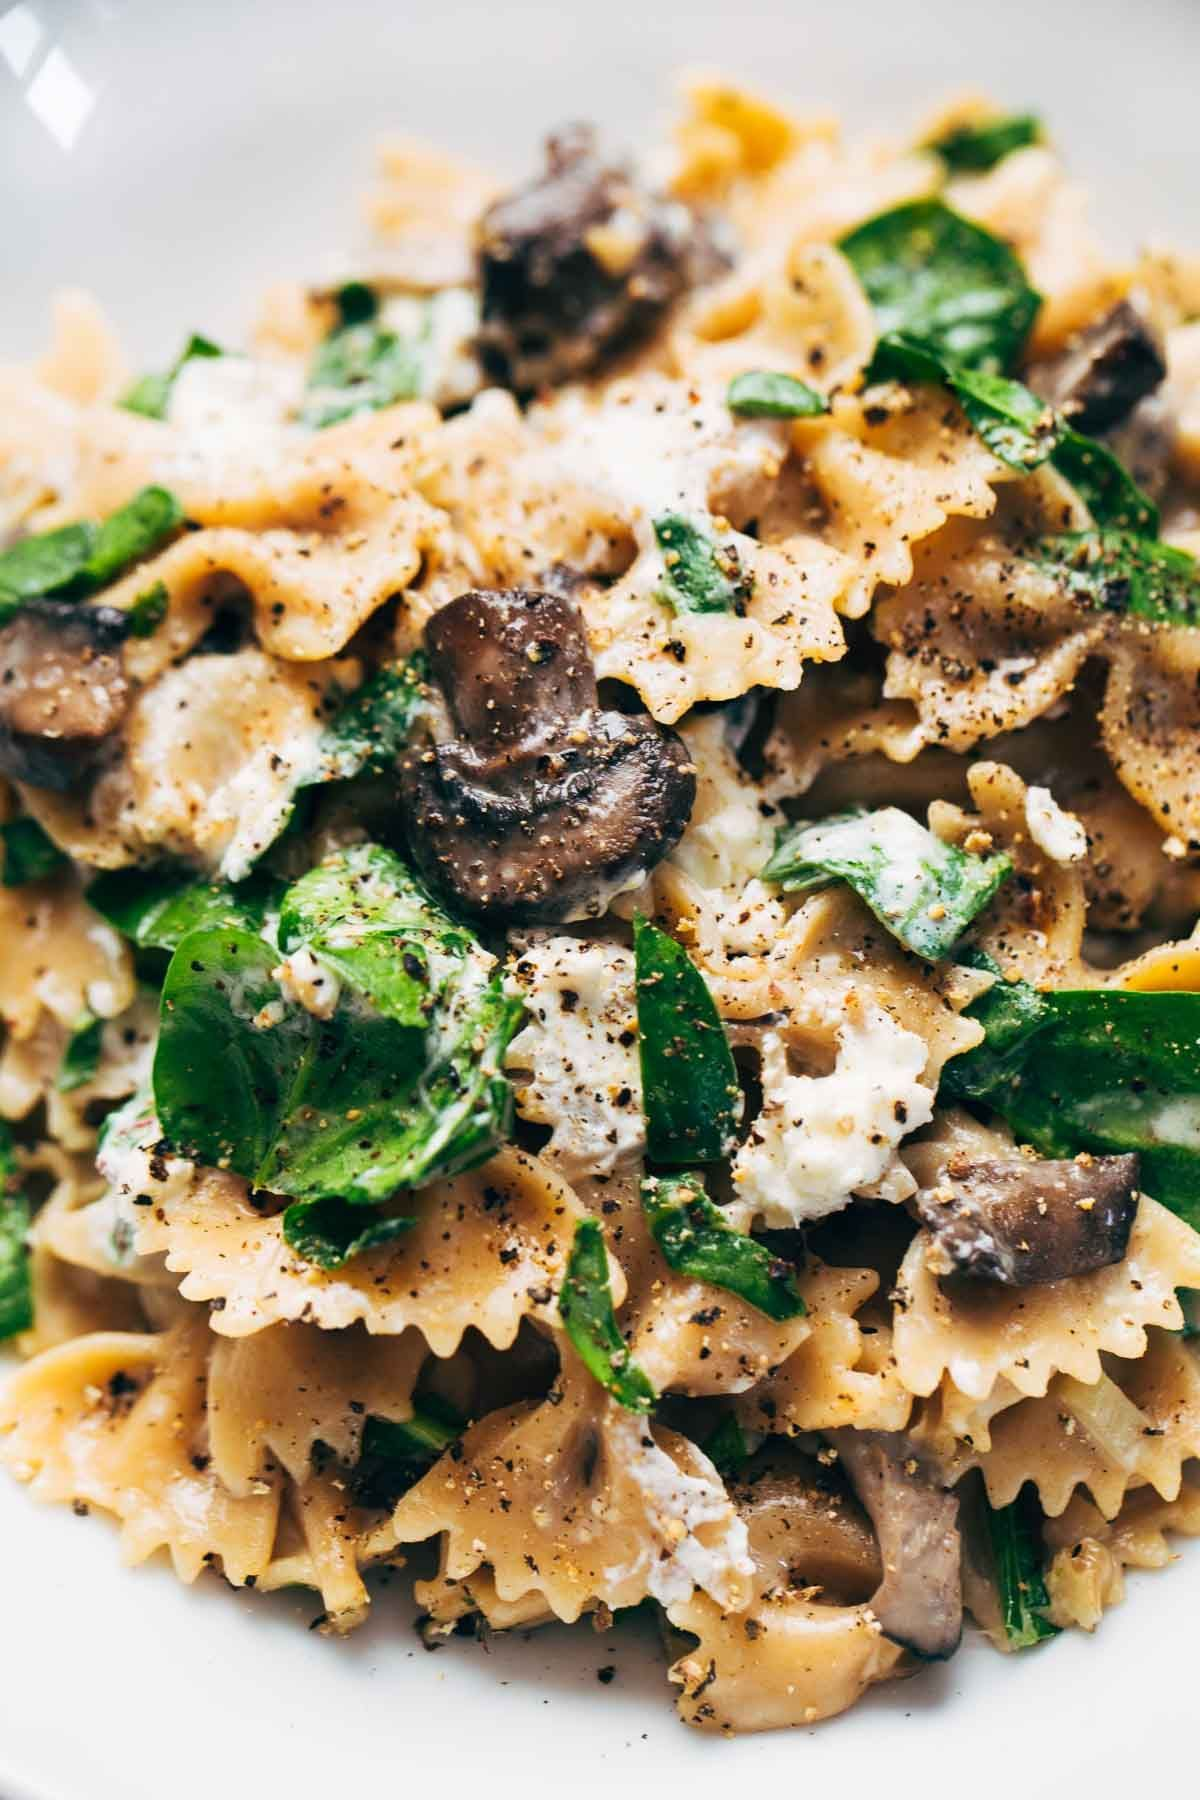 Date Night Mushroom Pasta with Goat Cheese - swimming in a white wine, garlic, and cream sauce. Perfect for a date night in! |